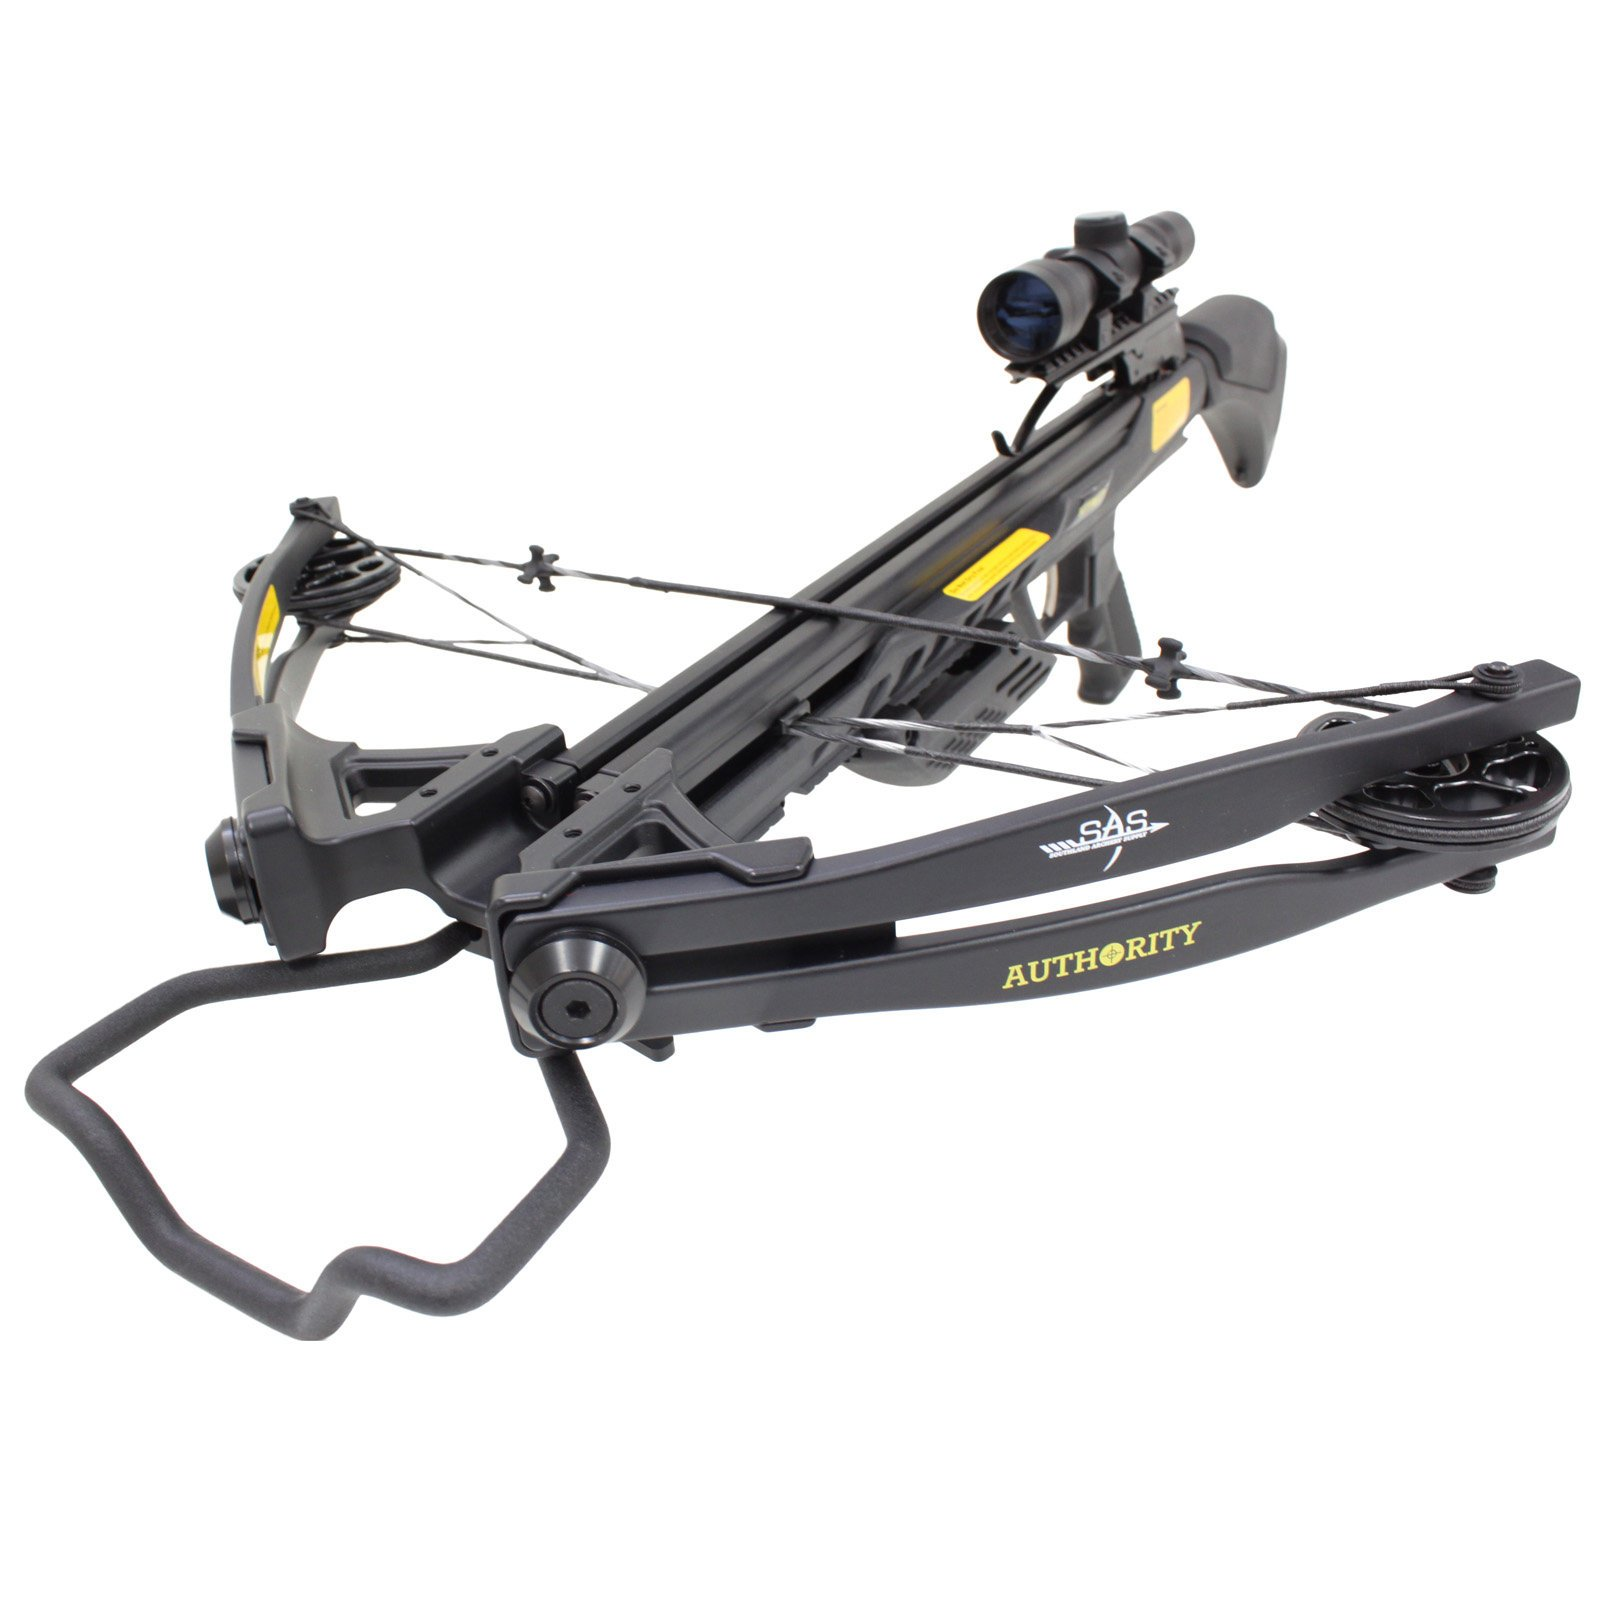 Southland Archery Supply SAS Authoirity 175lbs Compound Crossbow 4x32 Scope Package (Black)